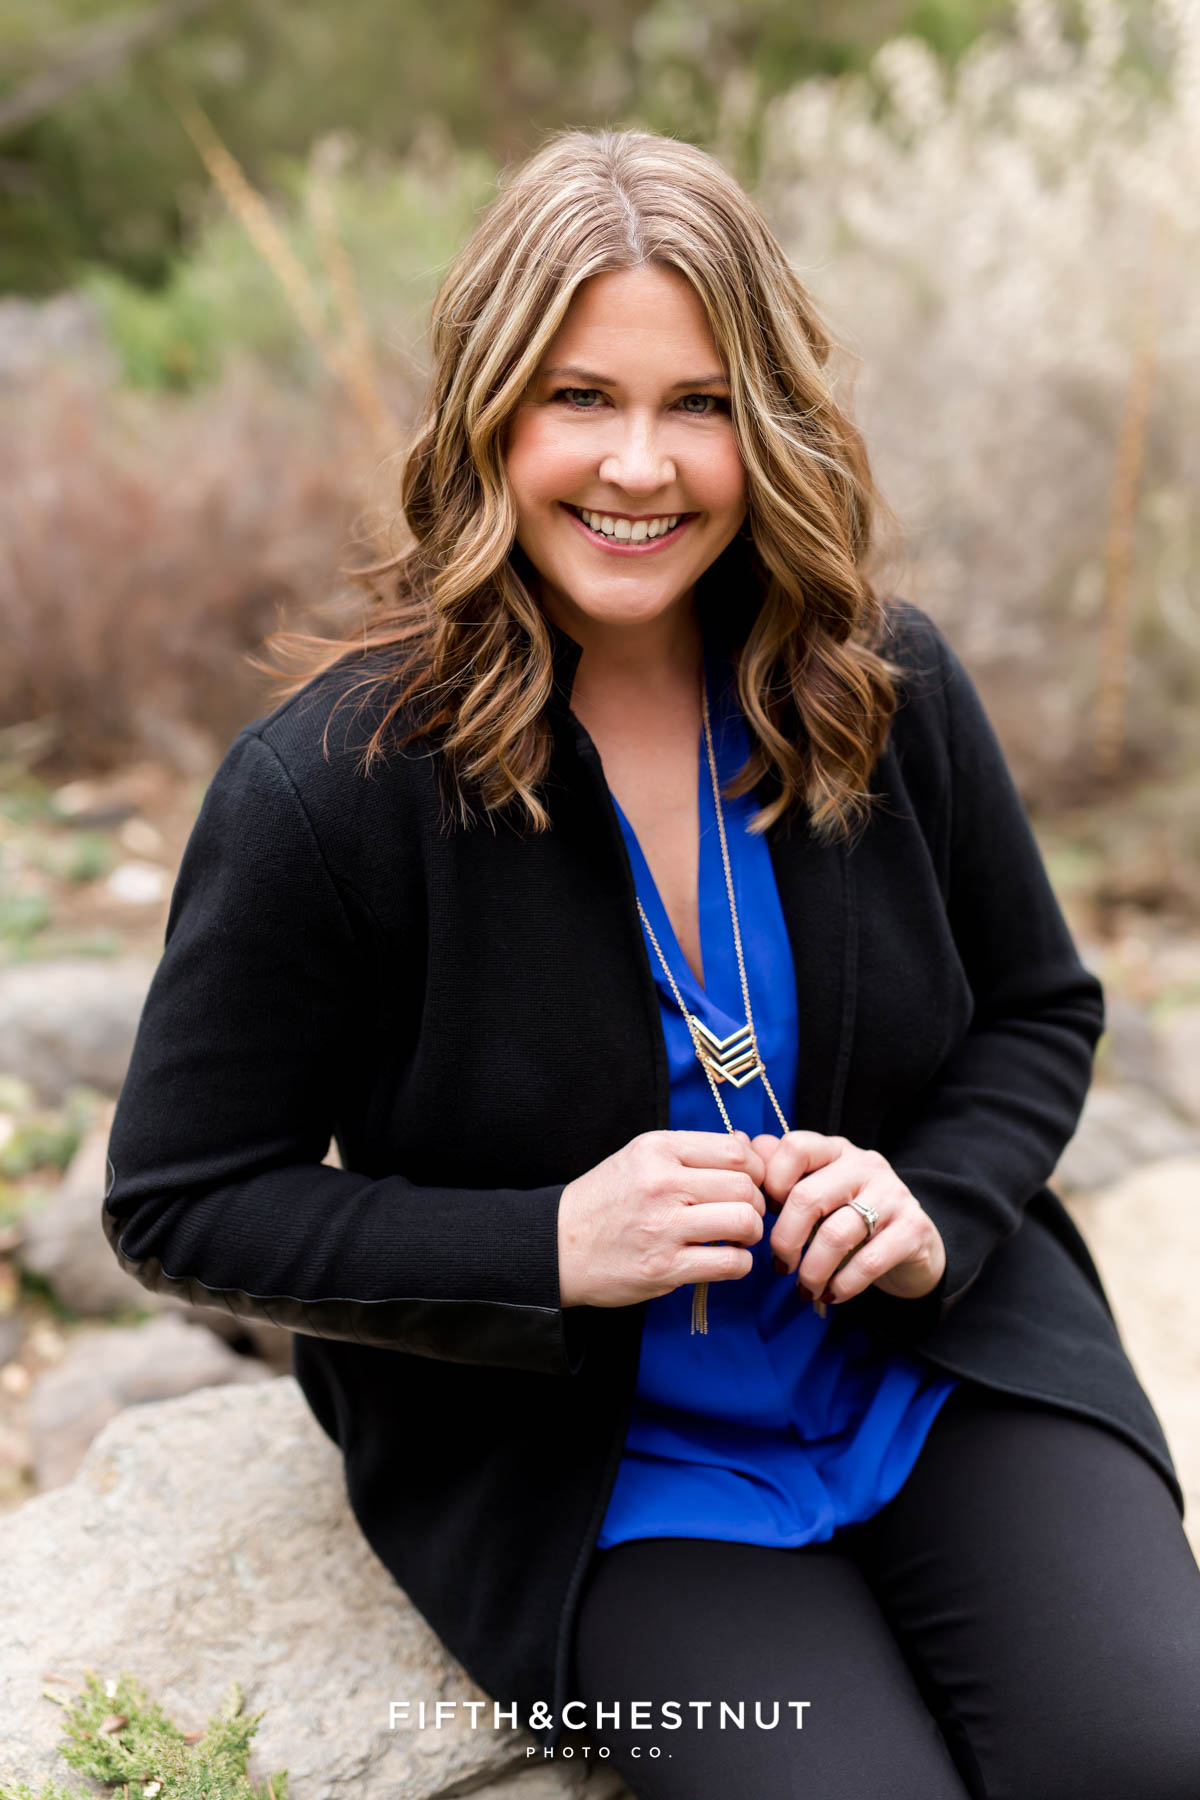 Spring Reno Headshots with Royal Blue theme by Reno Headshot Photographer